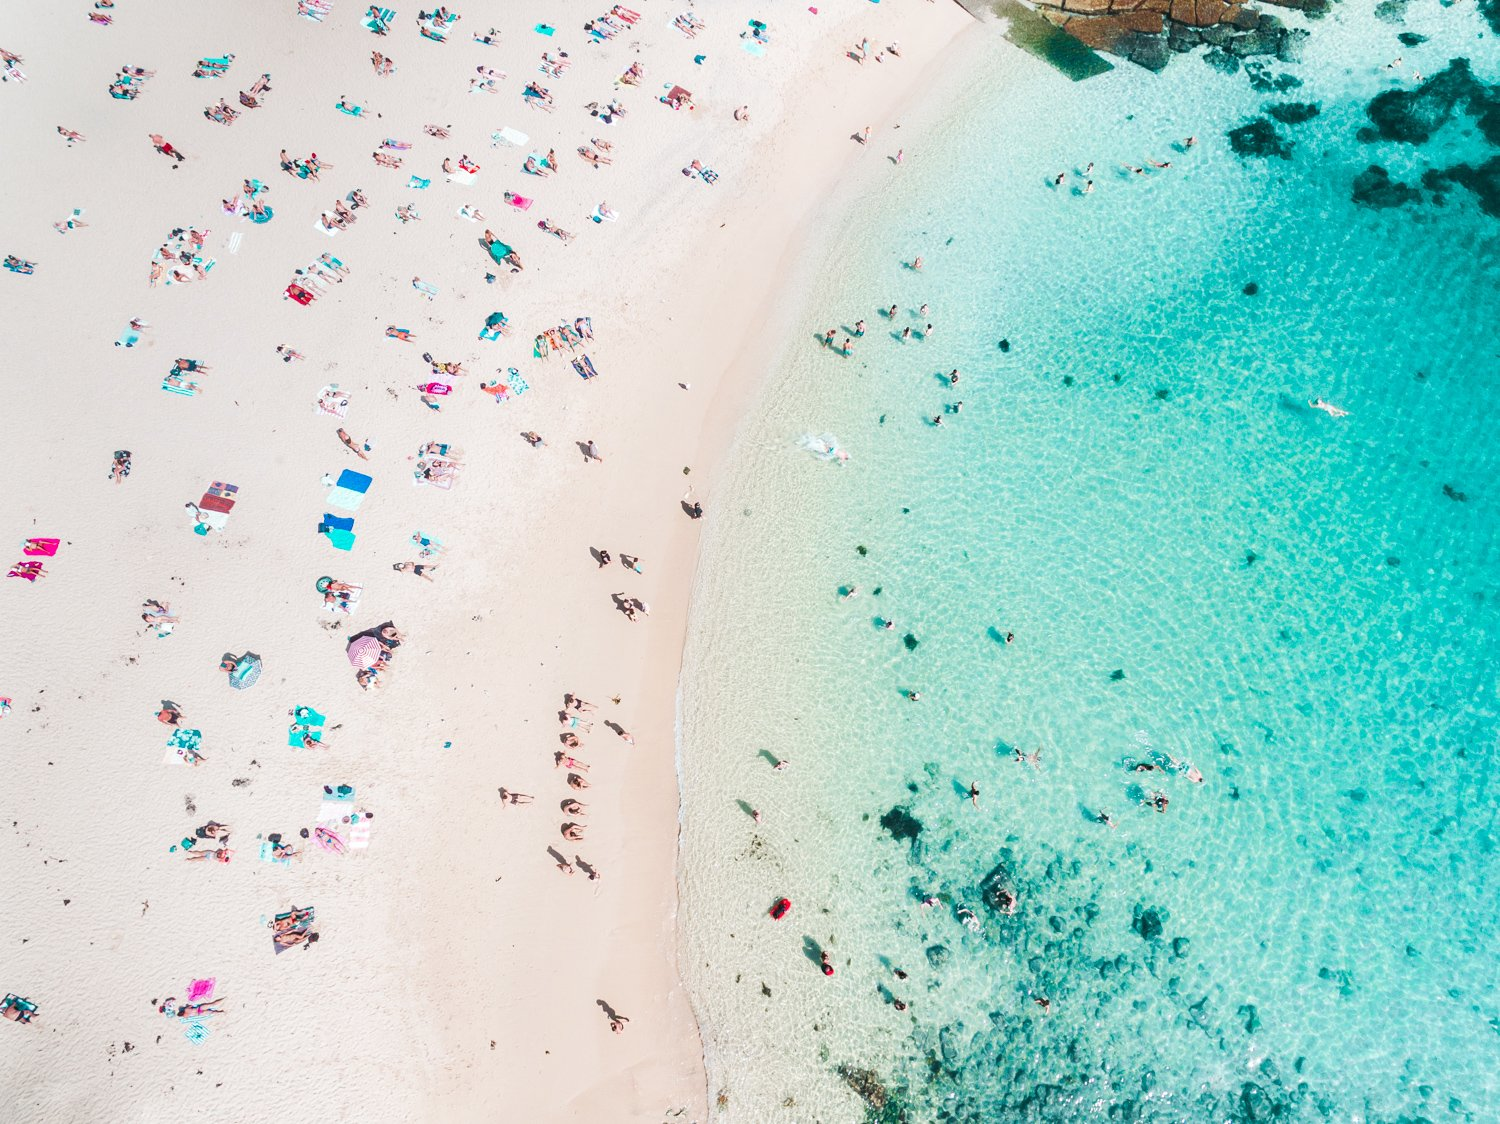 Summers day at Shelly Beach with people tanning and swimming in blue water in Sydney